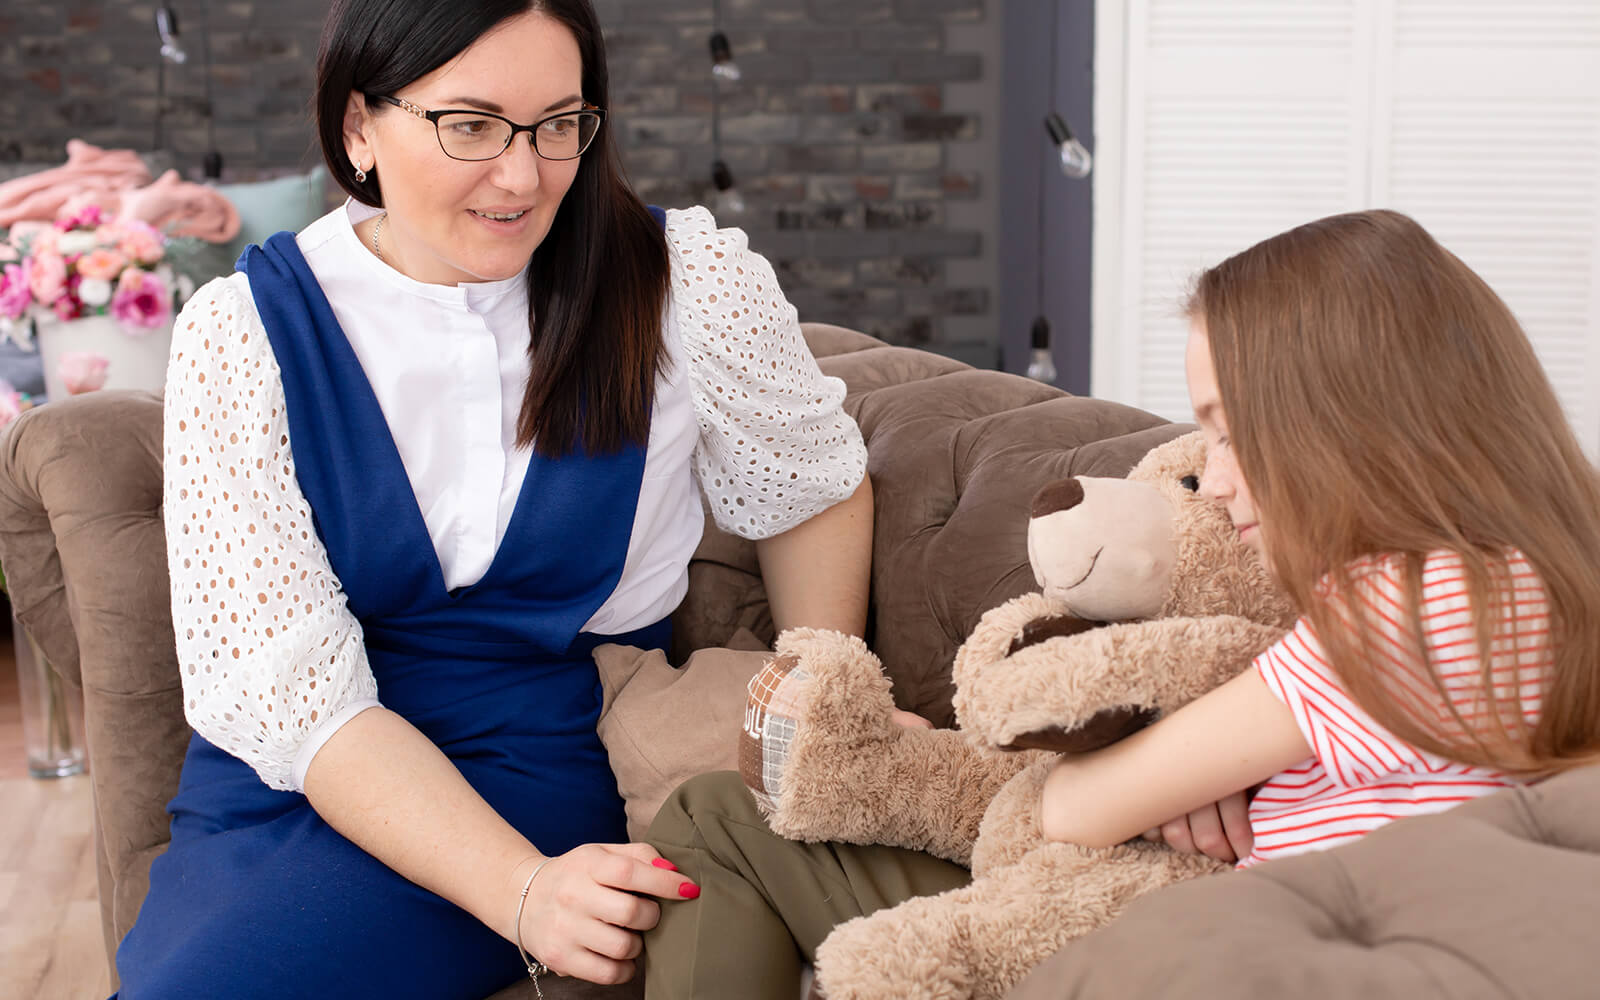 Counselor speaking with a child